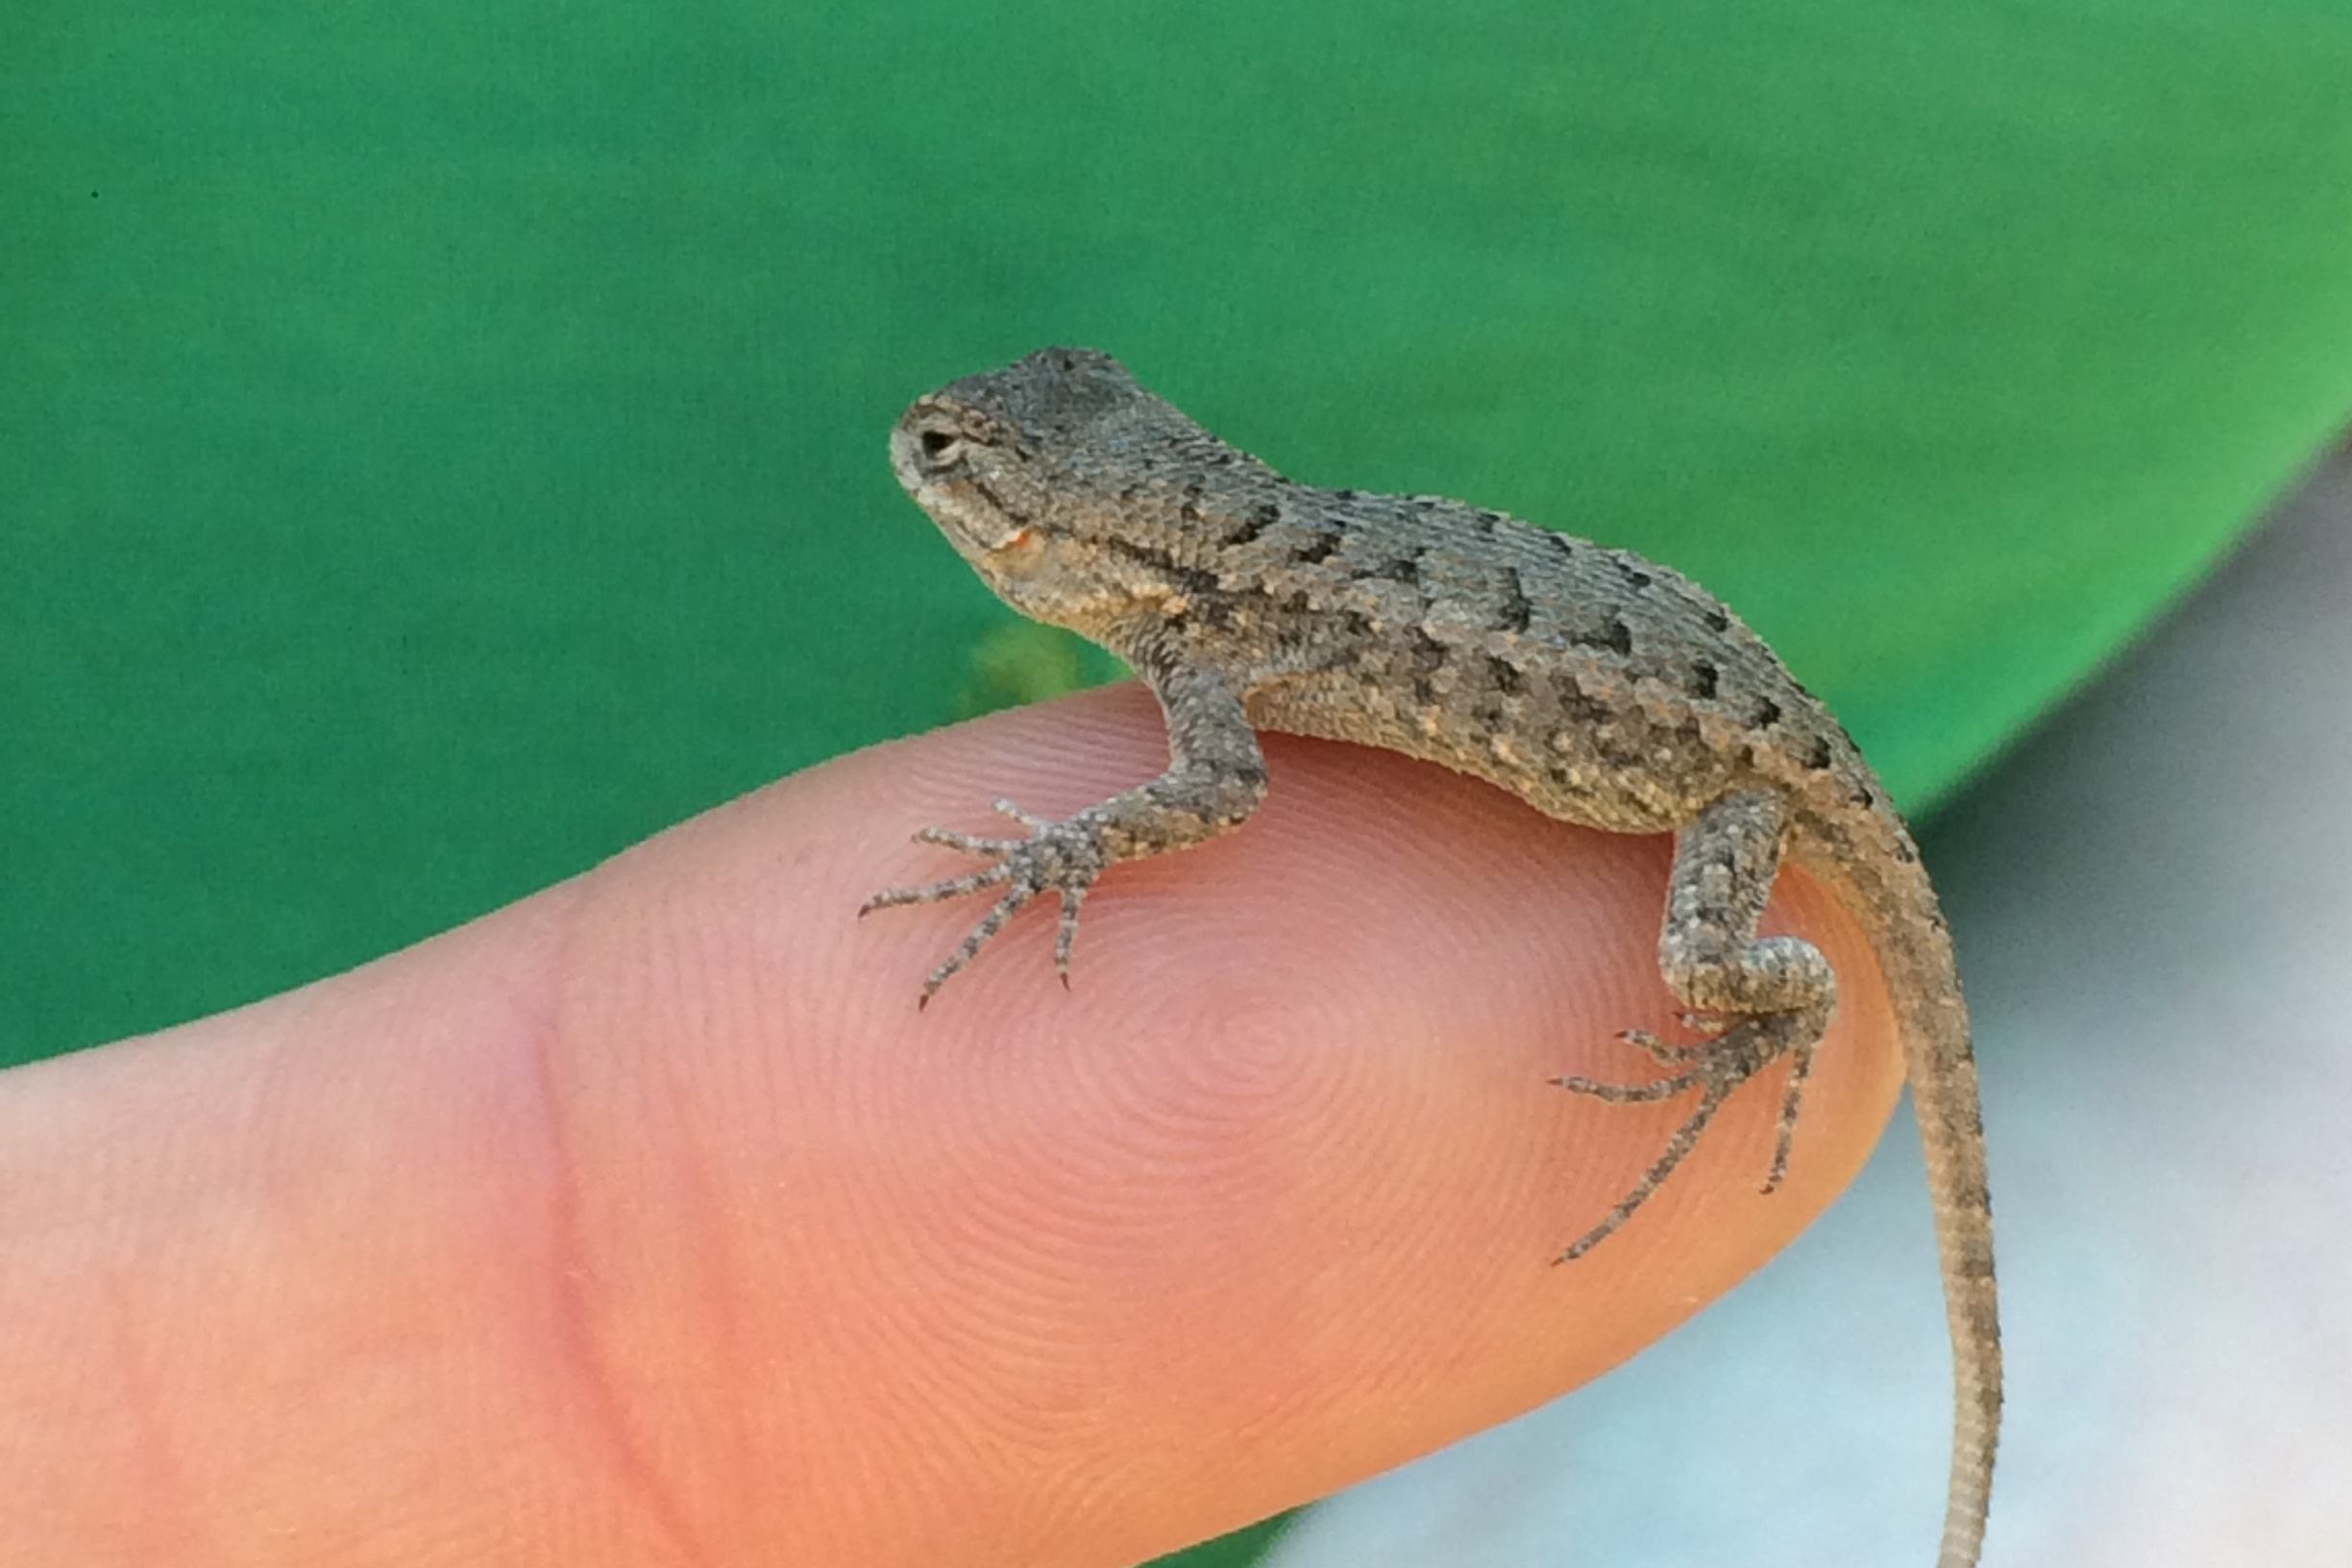 Photo of Small Western Fence Lizard sitting on a fingertip